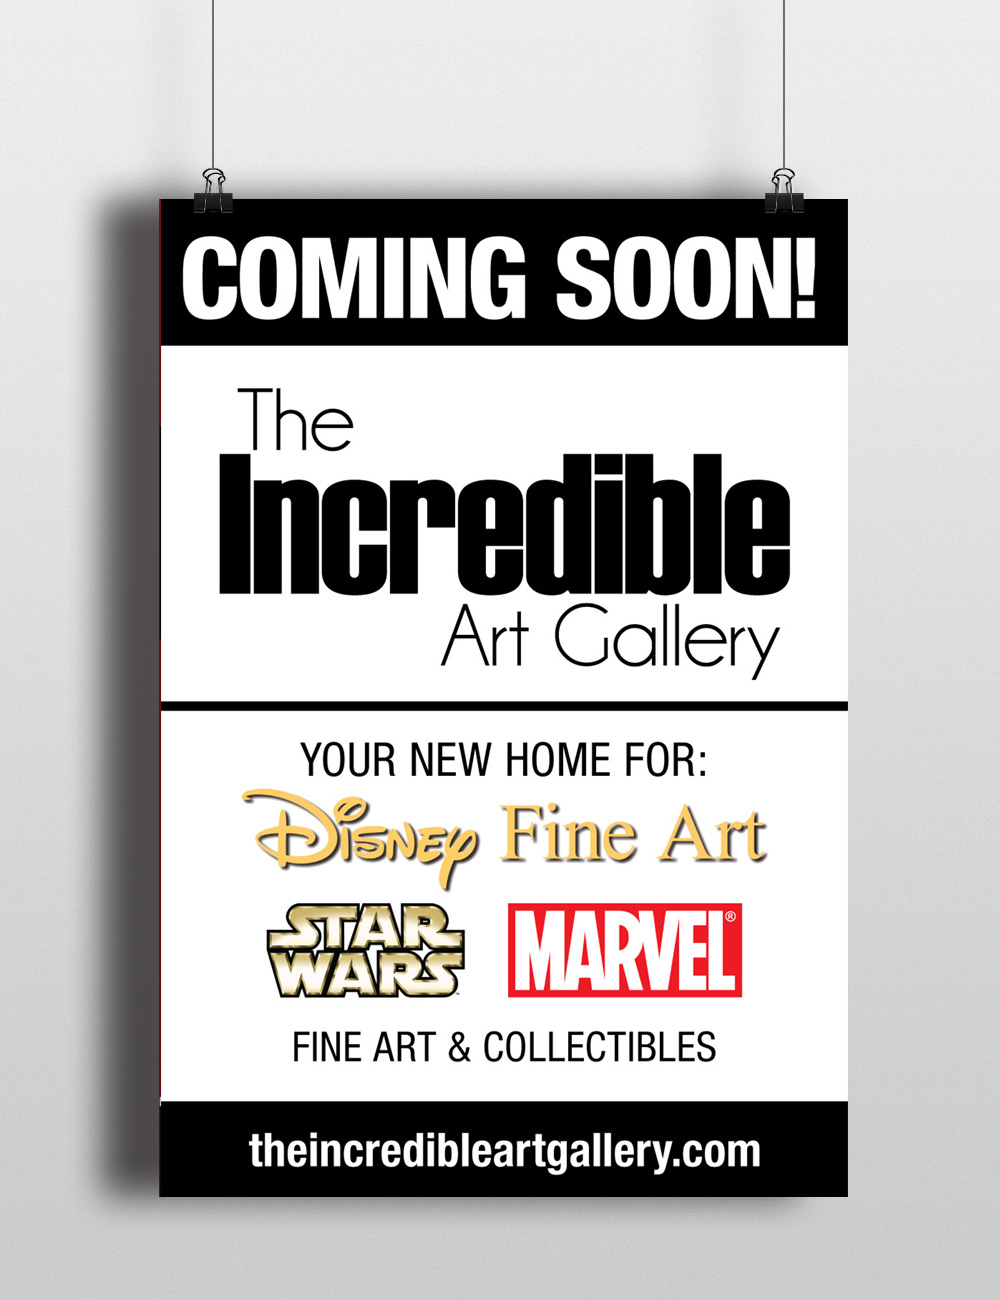 The Incredible Art Gallery Poster Design by Seen Designs